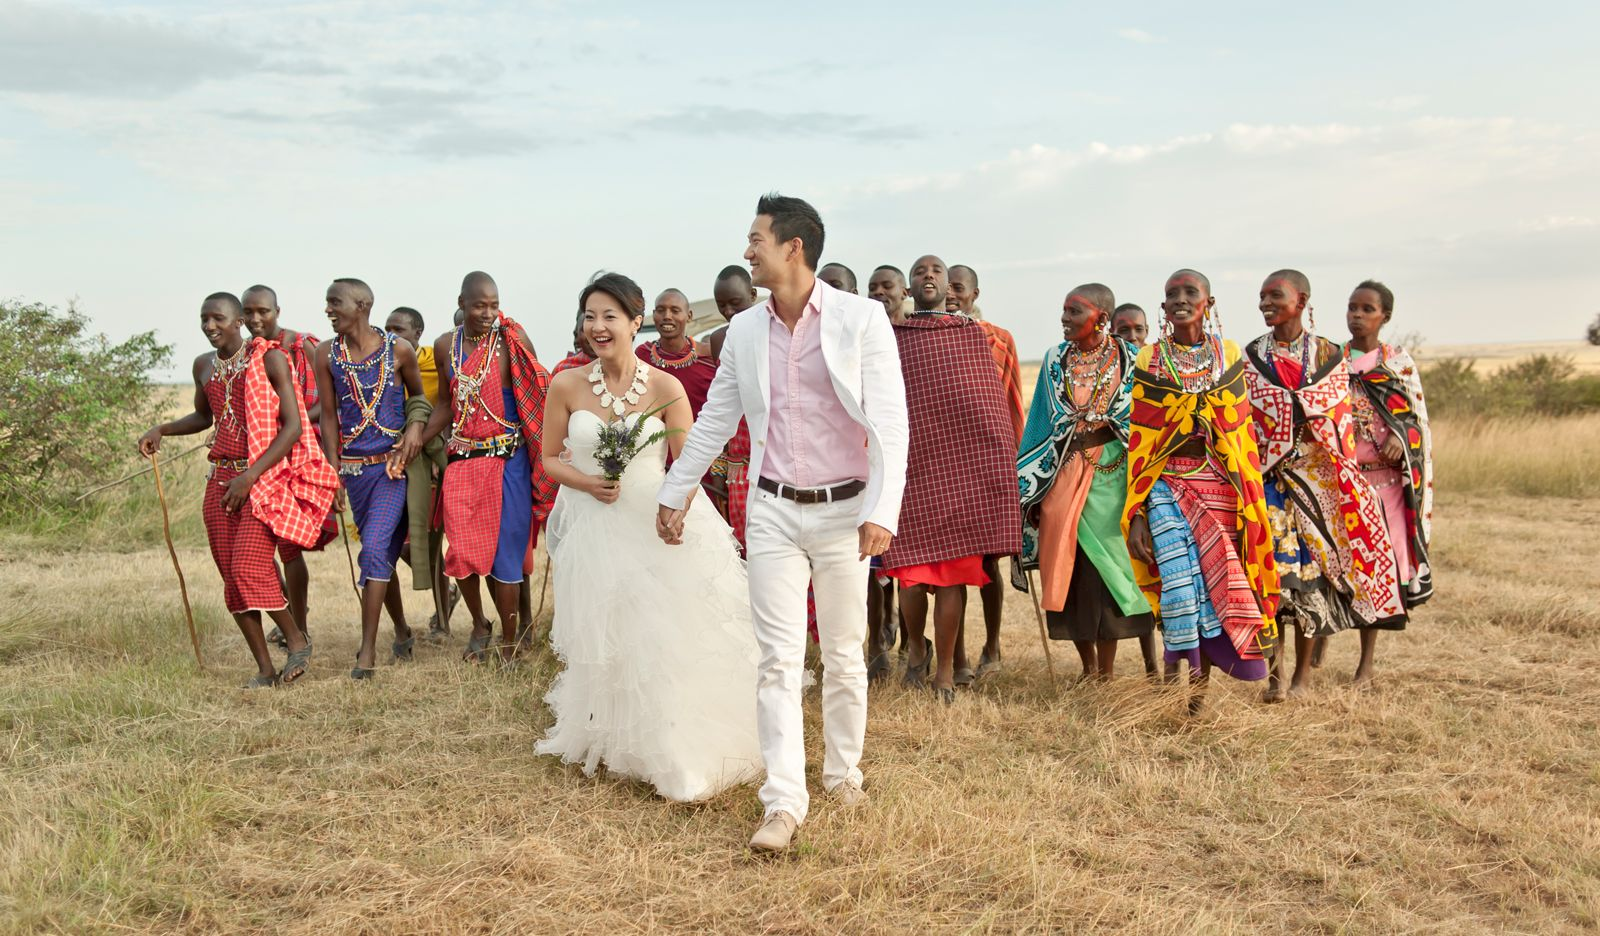 A couple from Hong Kong tie the knot in the Maasai Mara